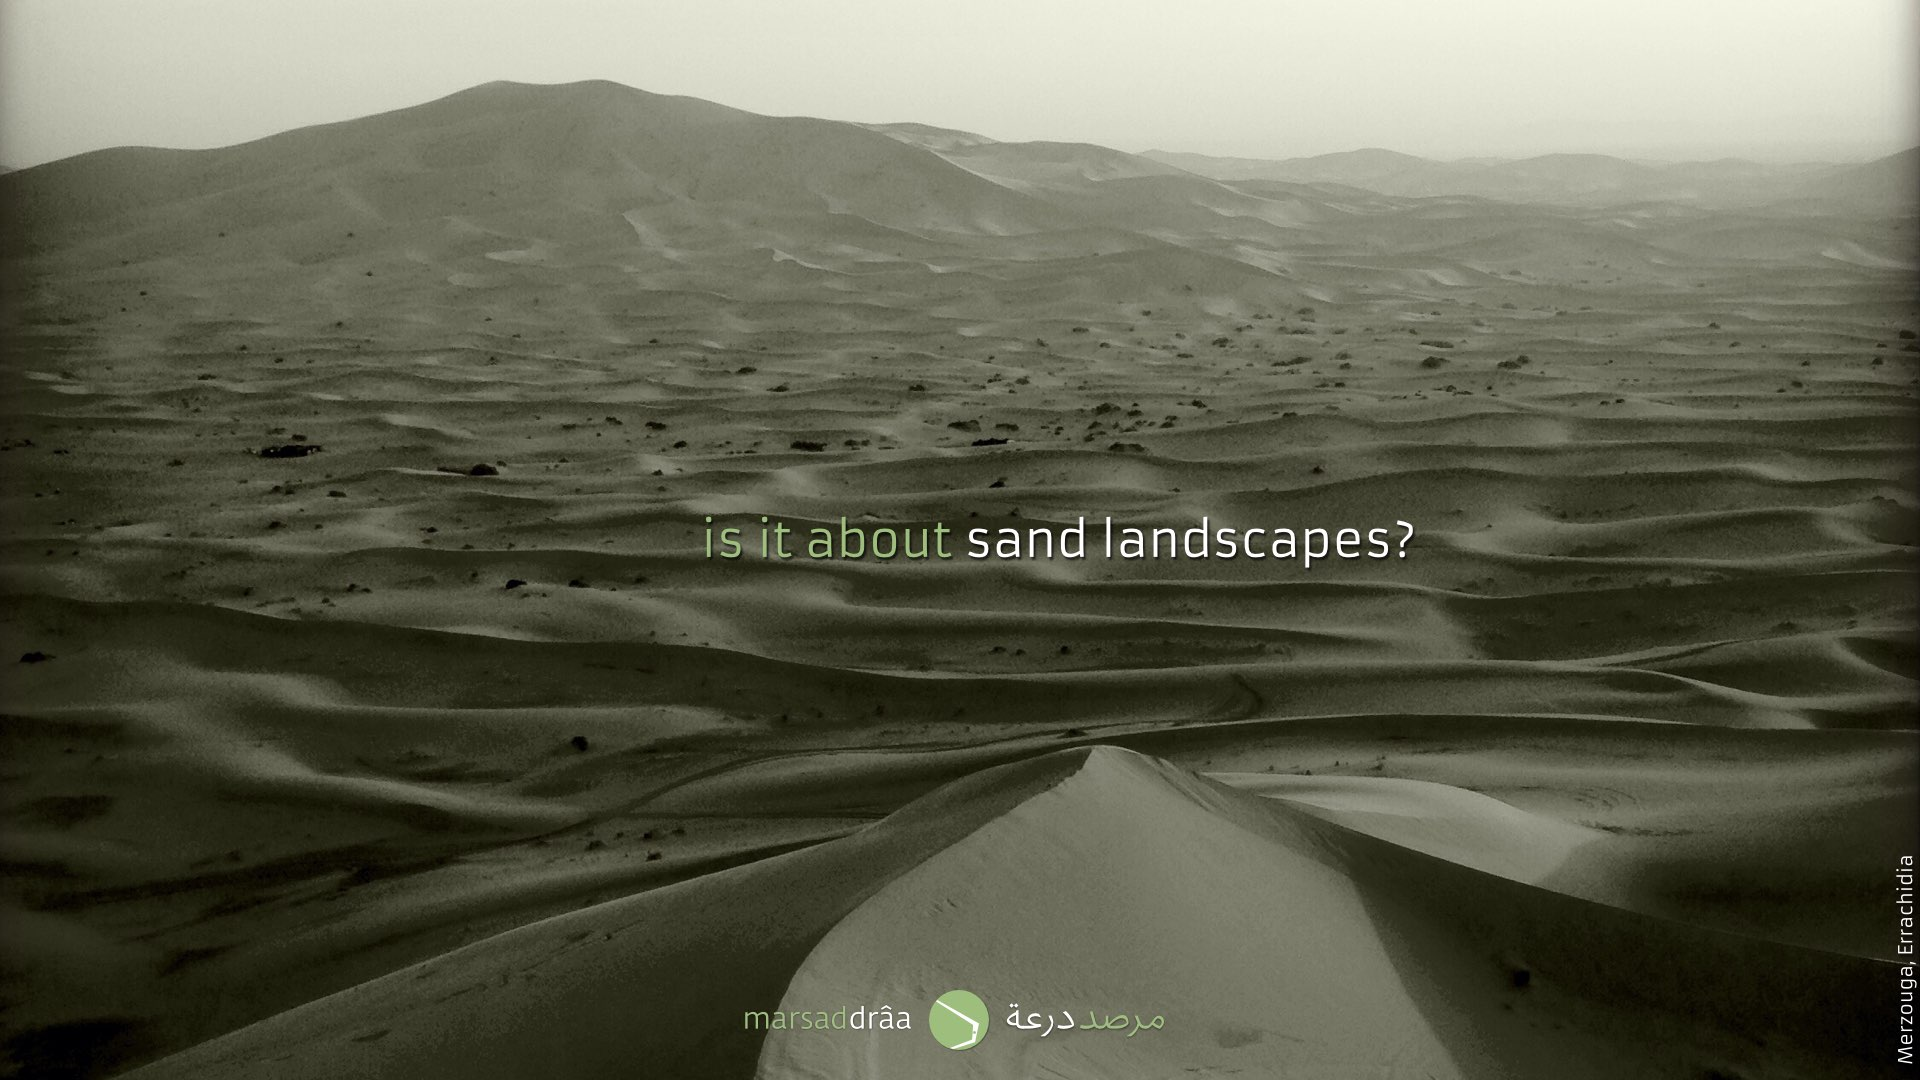 But the desert is only about sand landscapes?